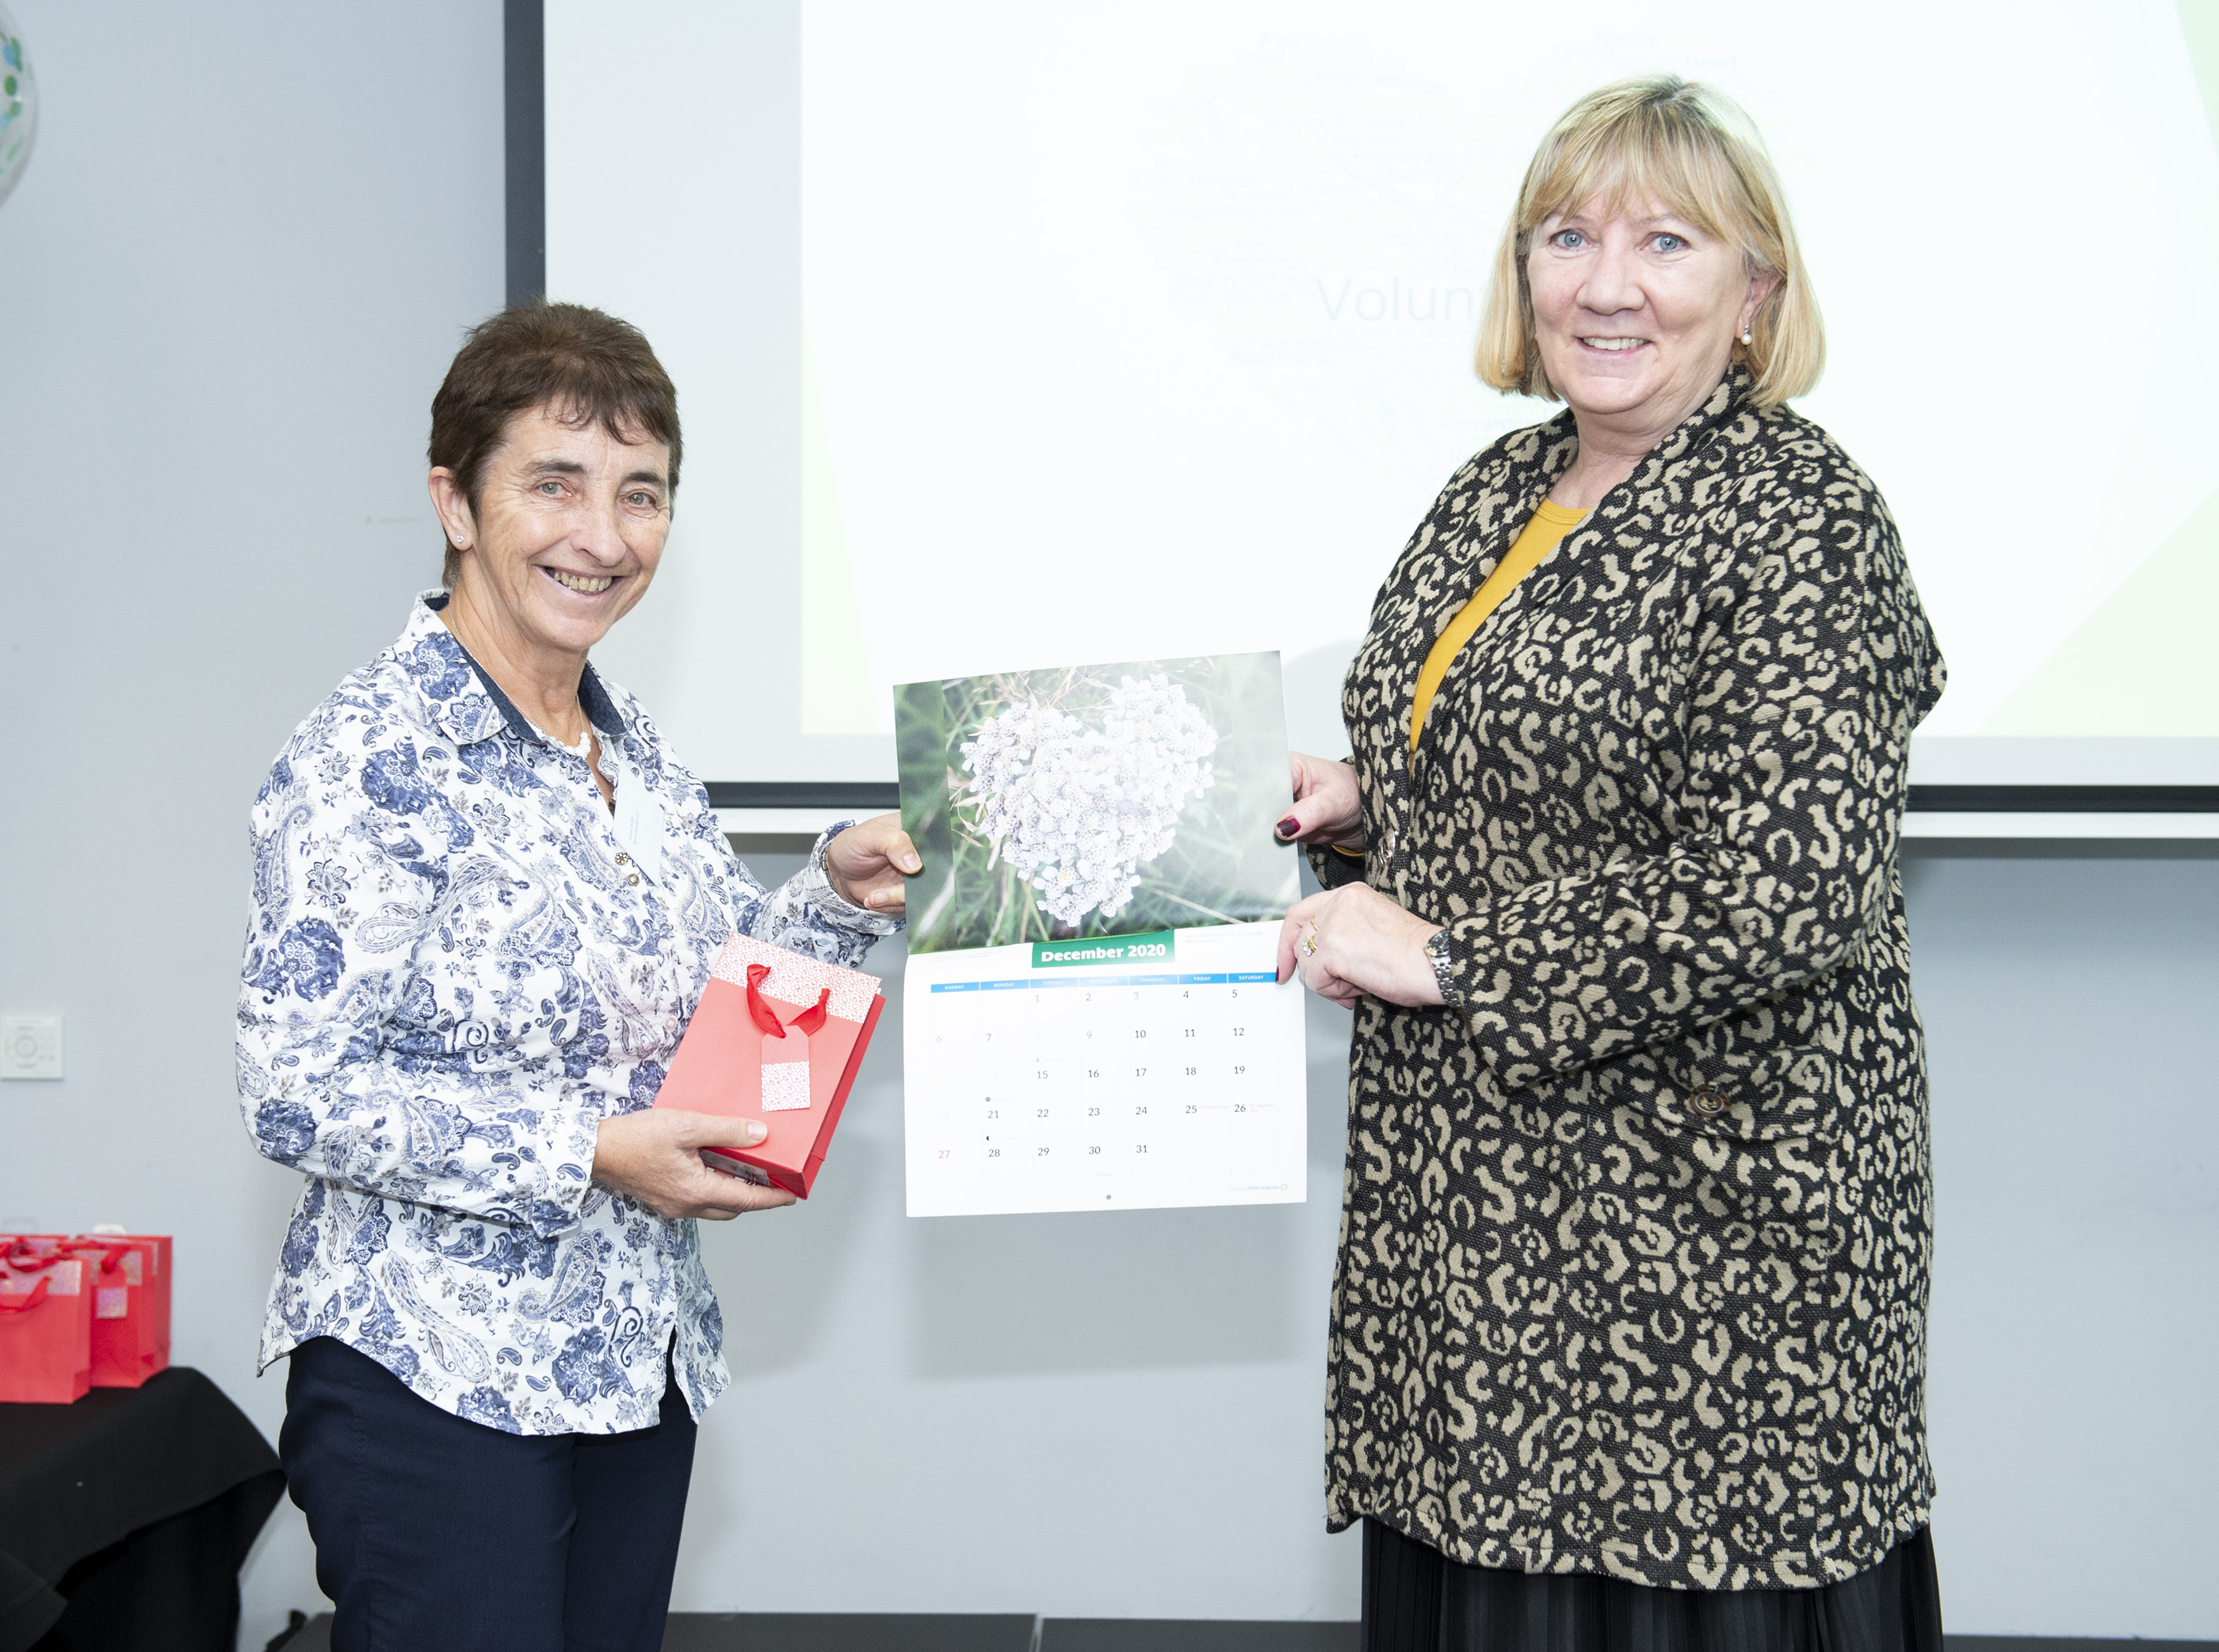 Angela Black, Chief Executive presents Teresa Butler, volunteer with North Munster CIS with her Calendar 2020 prize.